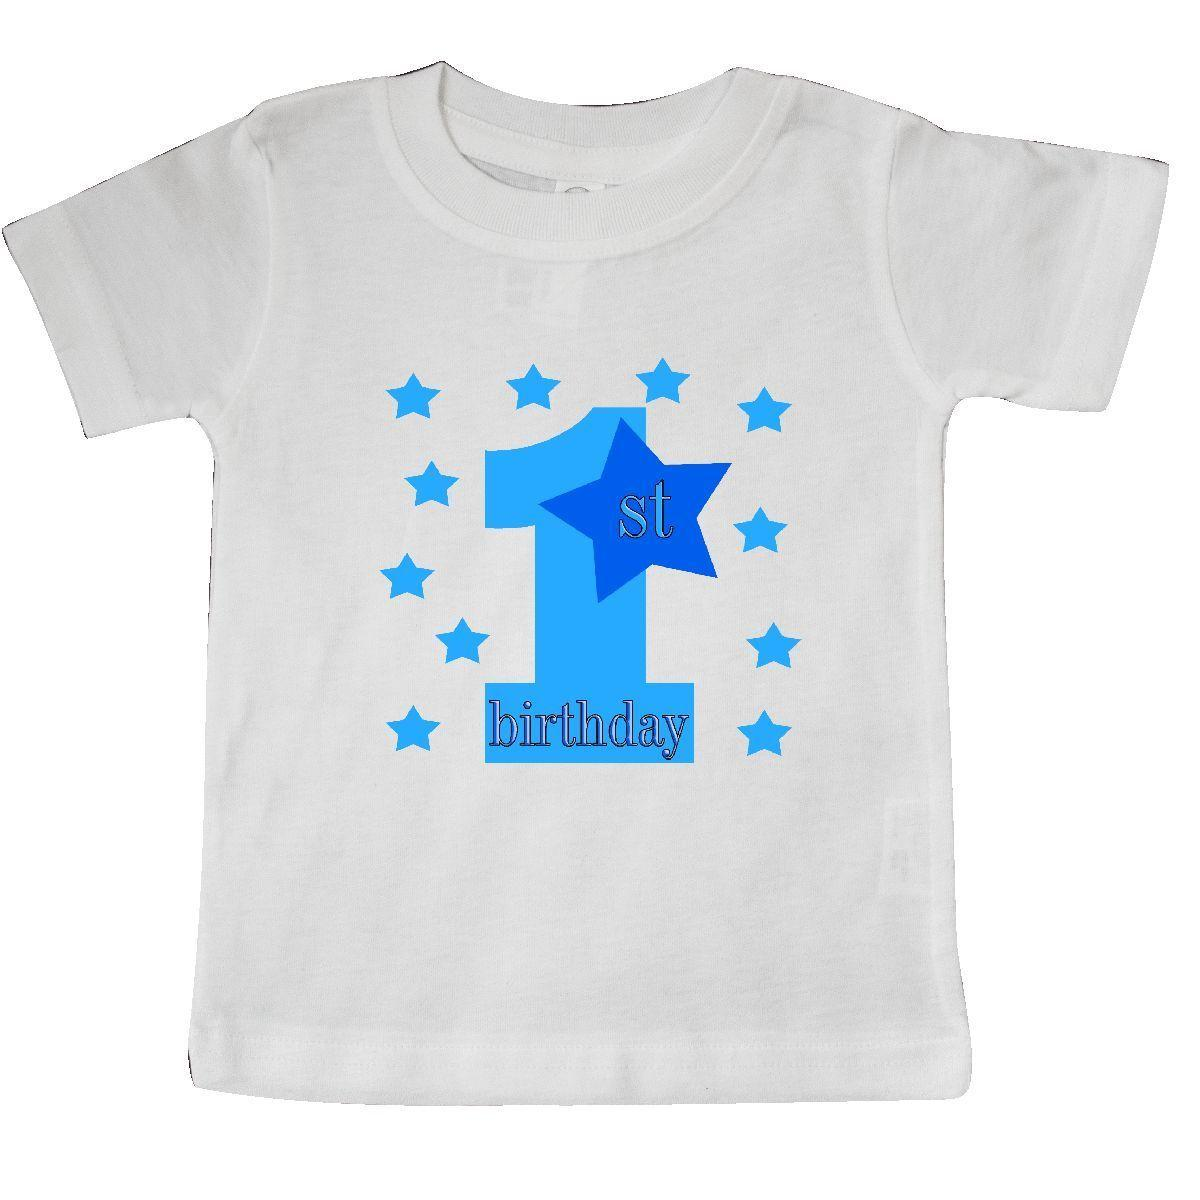 Inktastic 1st Birthday Boy Stars Baby T Shirt Blue Party One Celebrate Funny Unisex Casual Tee Gift Ladies Shirts Design From Spirit